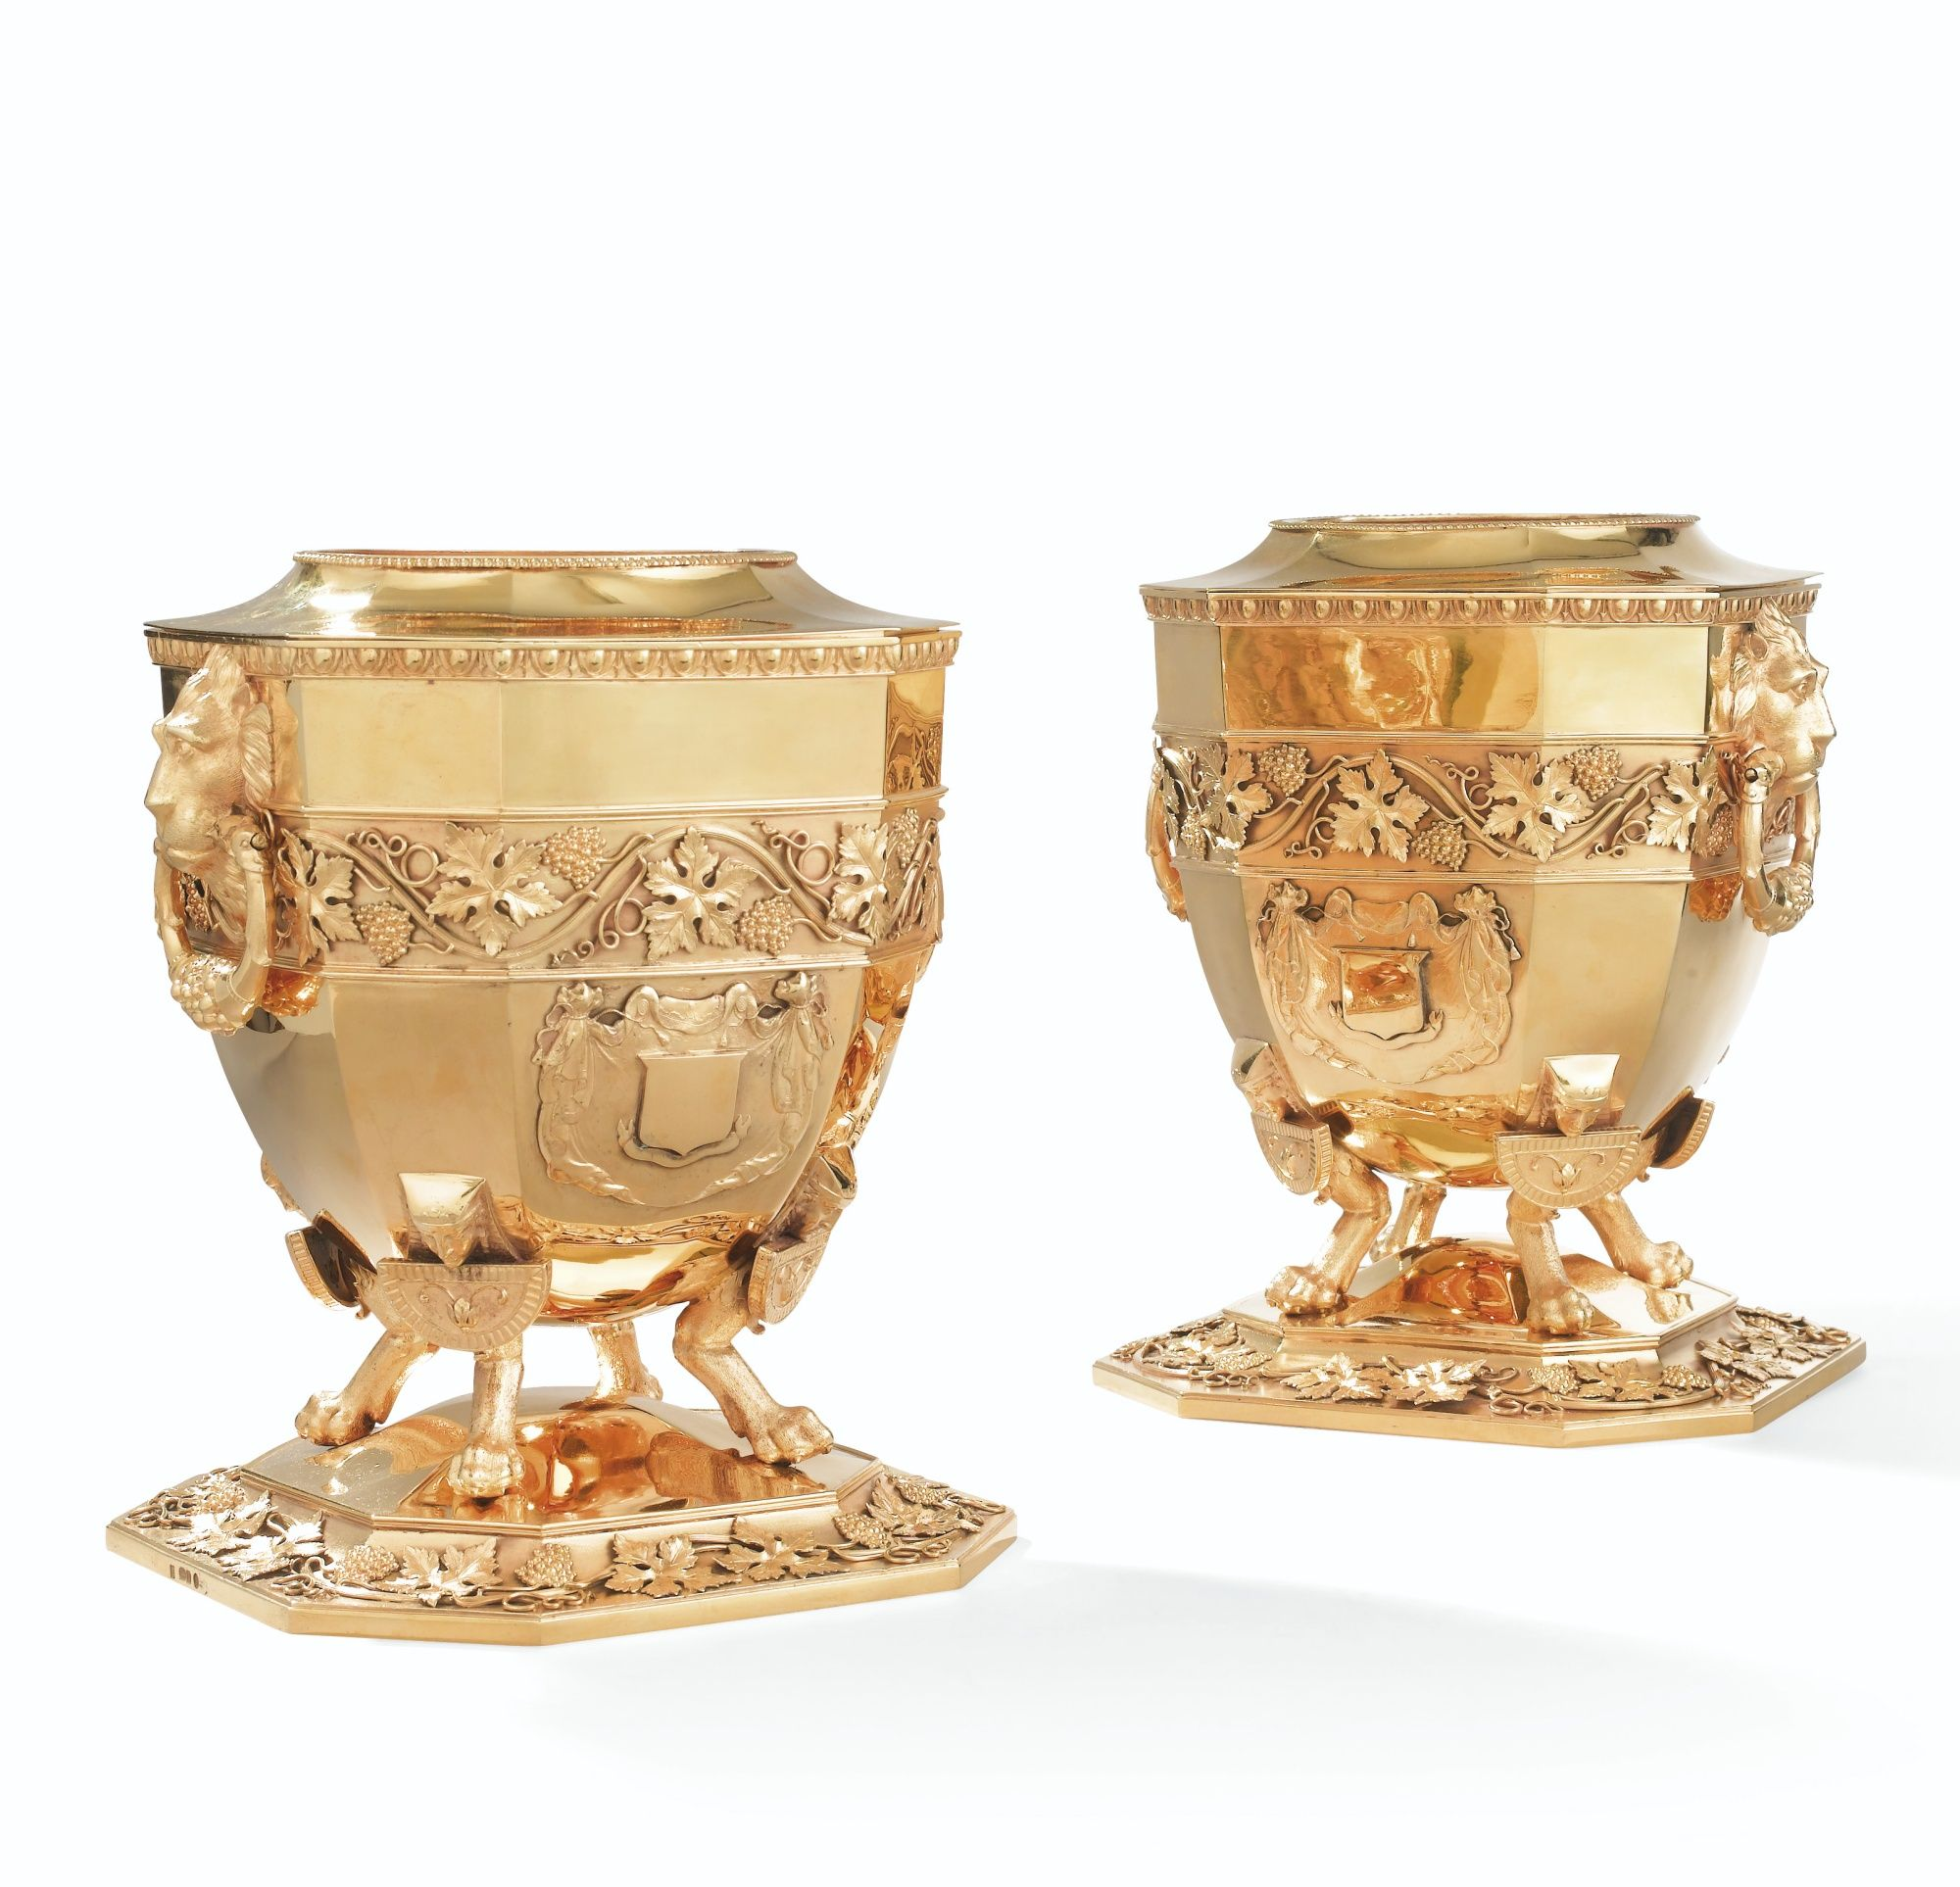 TWO LARGE ENGLISH SILVER-GILT WINE-COOLERS FORMING A PAIR